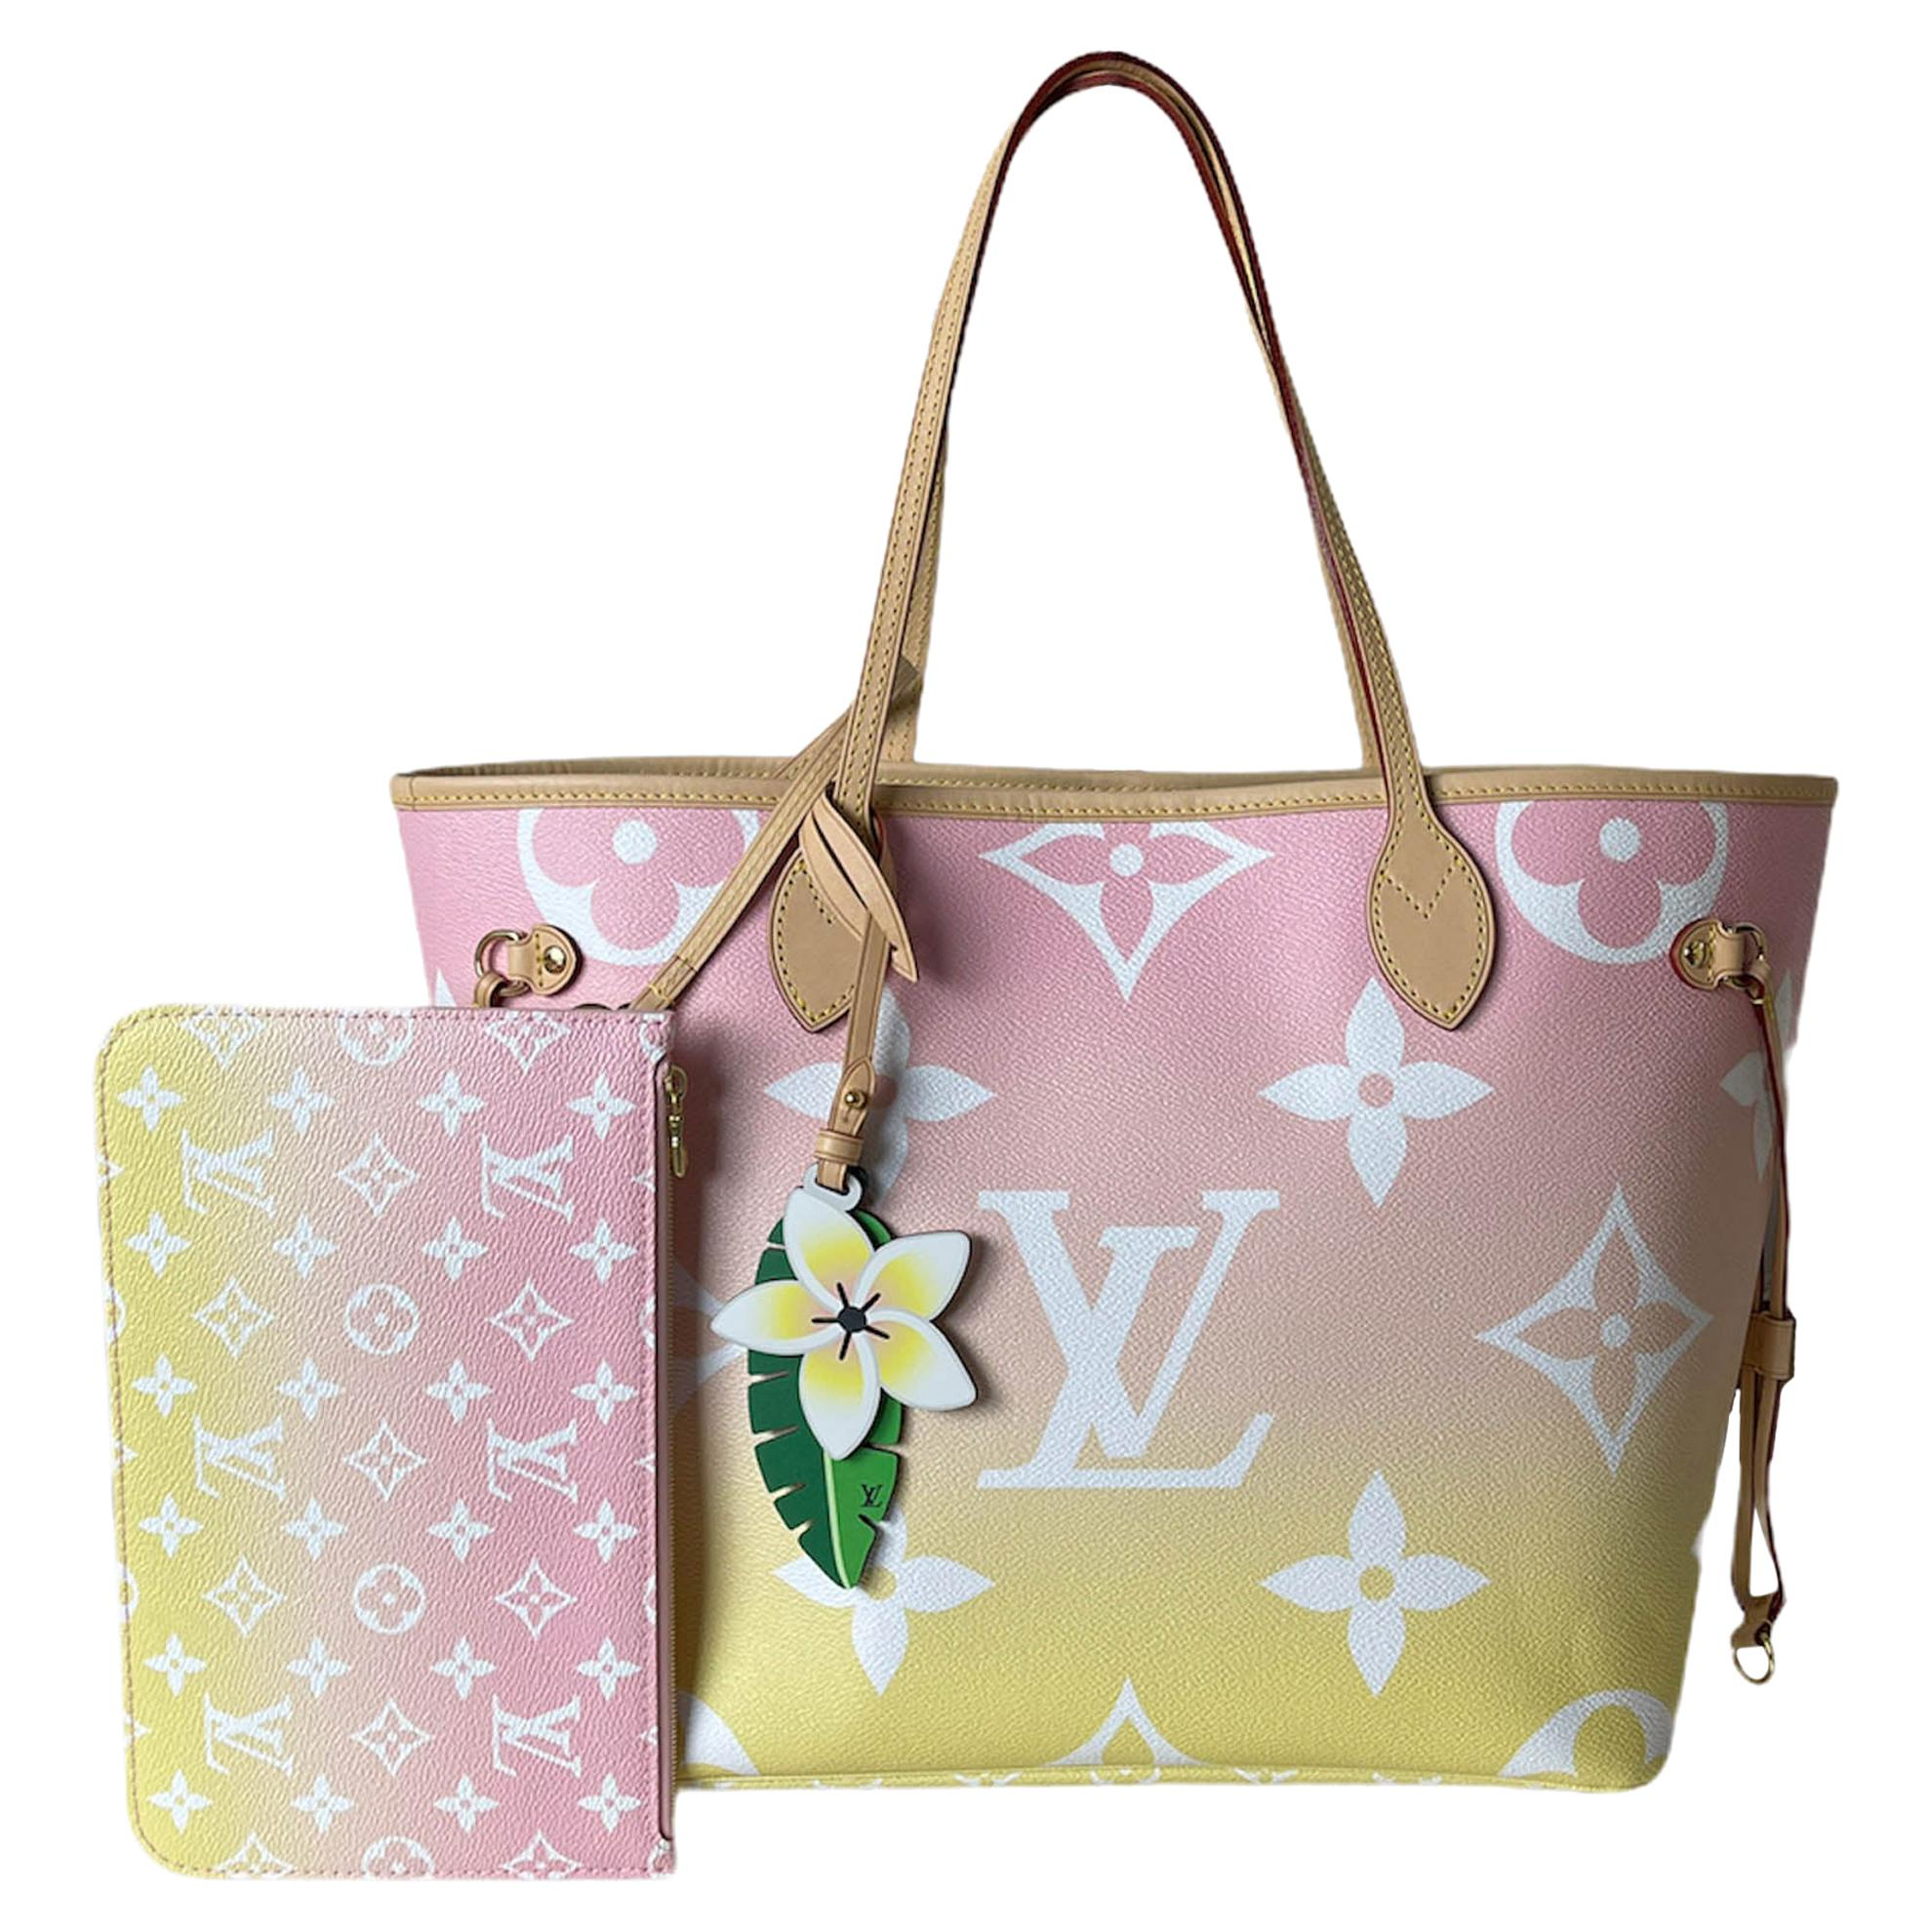 Louis Vuitton SOLD OUT Mist Monogram Giant By The Pool Neverfull MM Tote Bag